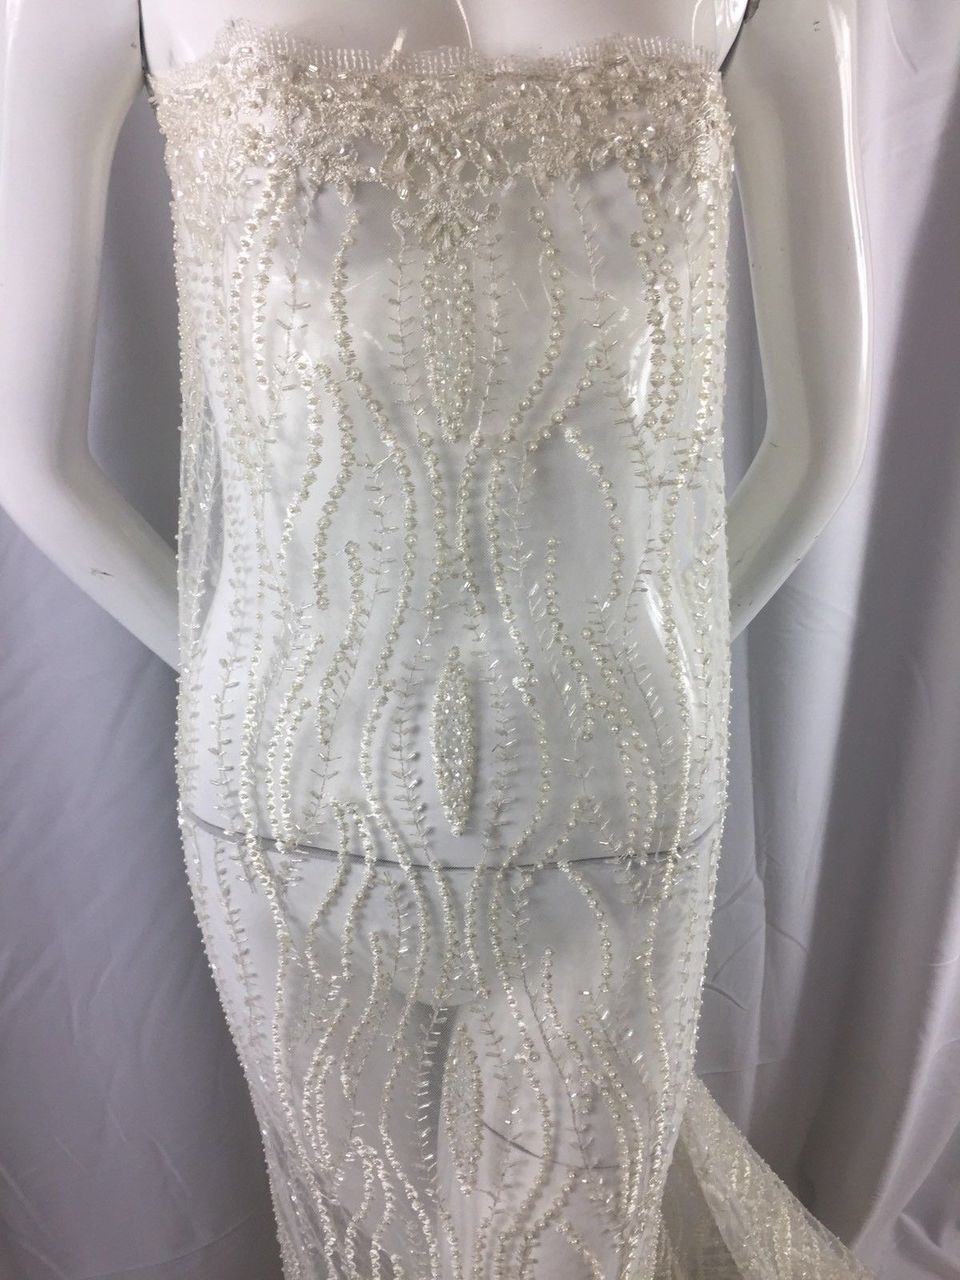 Classy bridal wedding beaded mesh lace ivory. sold by the yard. - KINGDOM OF FABRICS